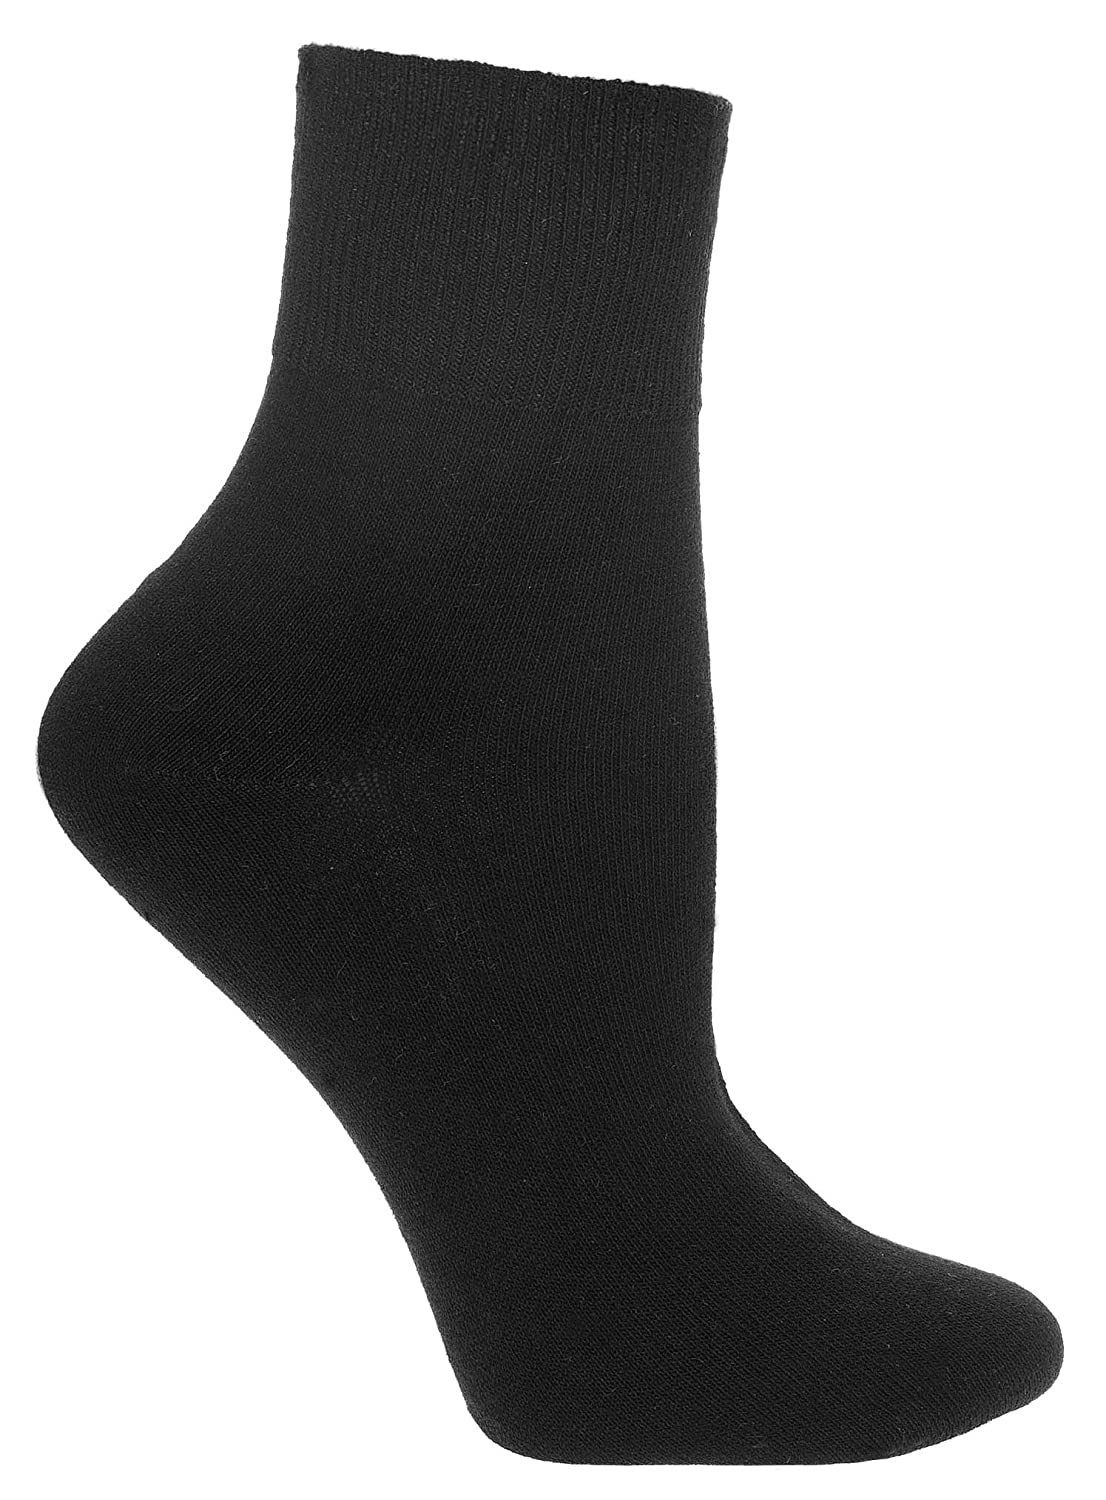 Shop black ankle socks at Neiman Marcus, where you will find free shipping on the latest in fashion from top designers.